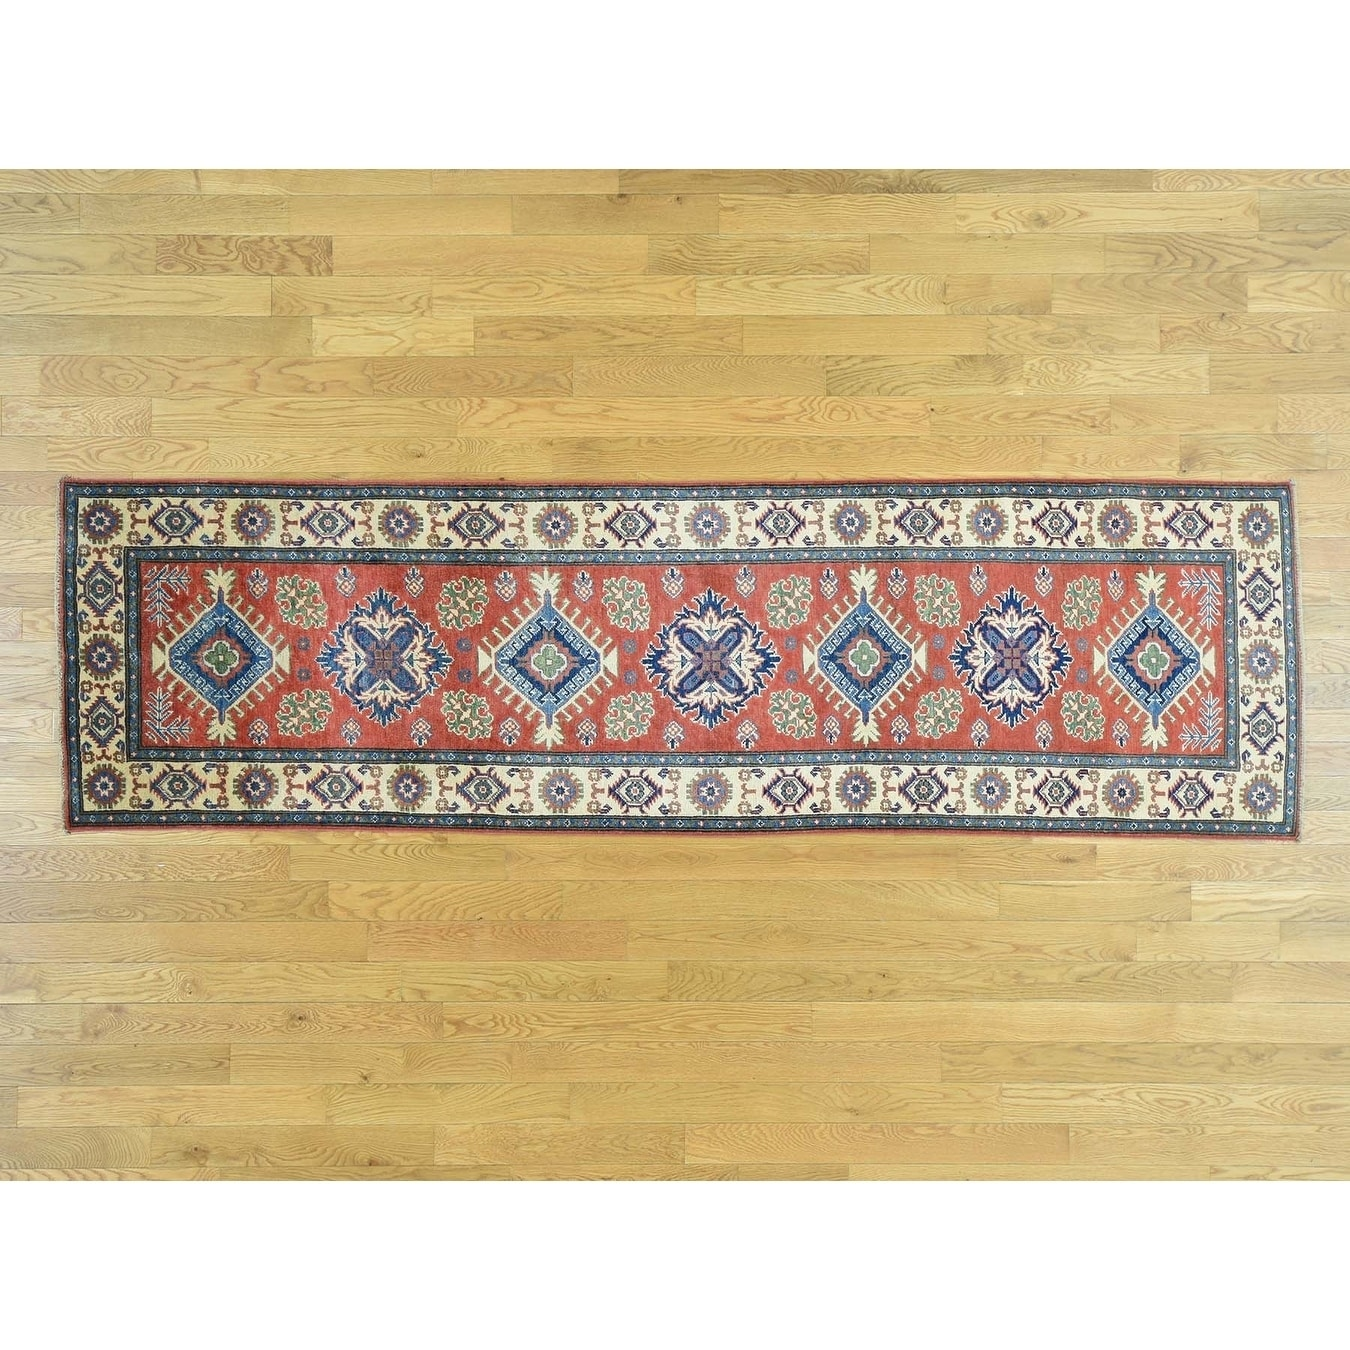 Hand Knotted Red Kazak with Wool Oriental Rug - 210 x 910